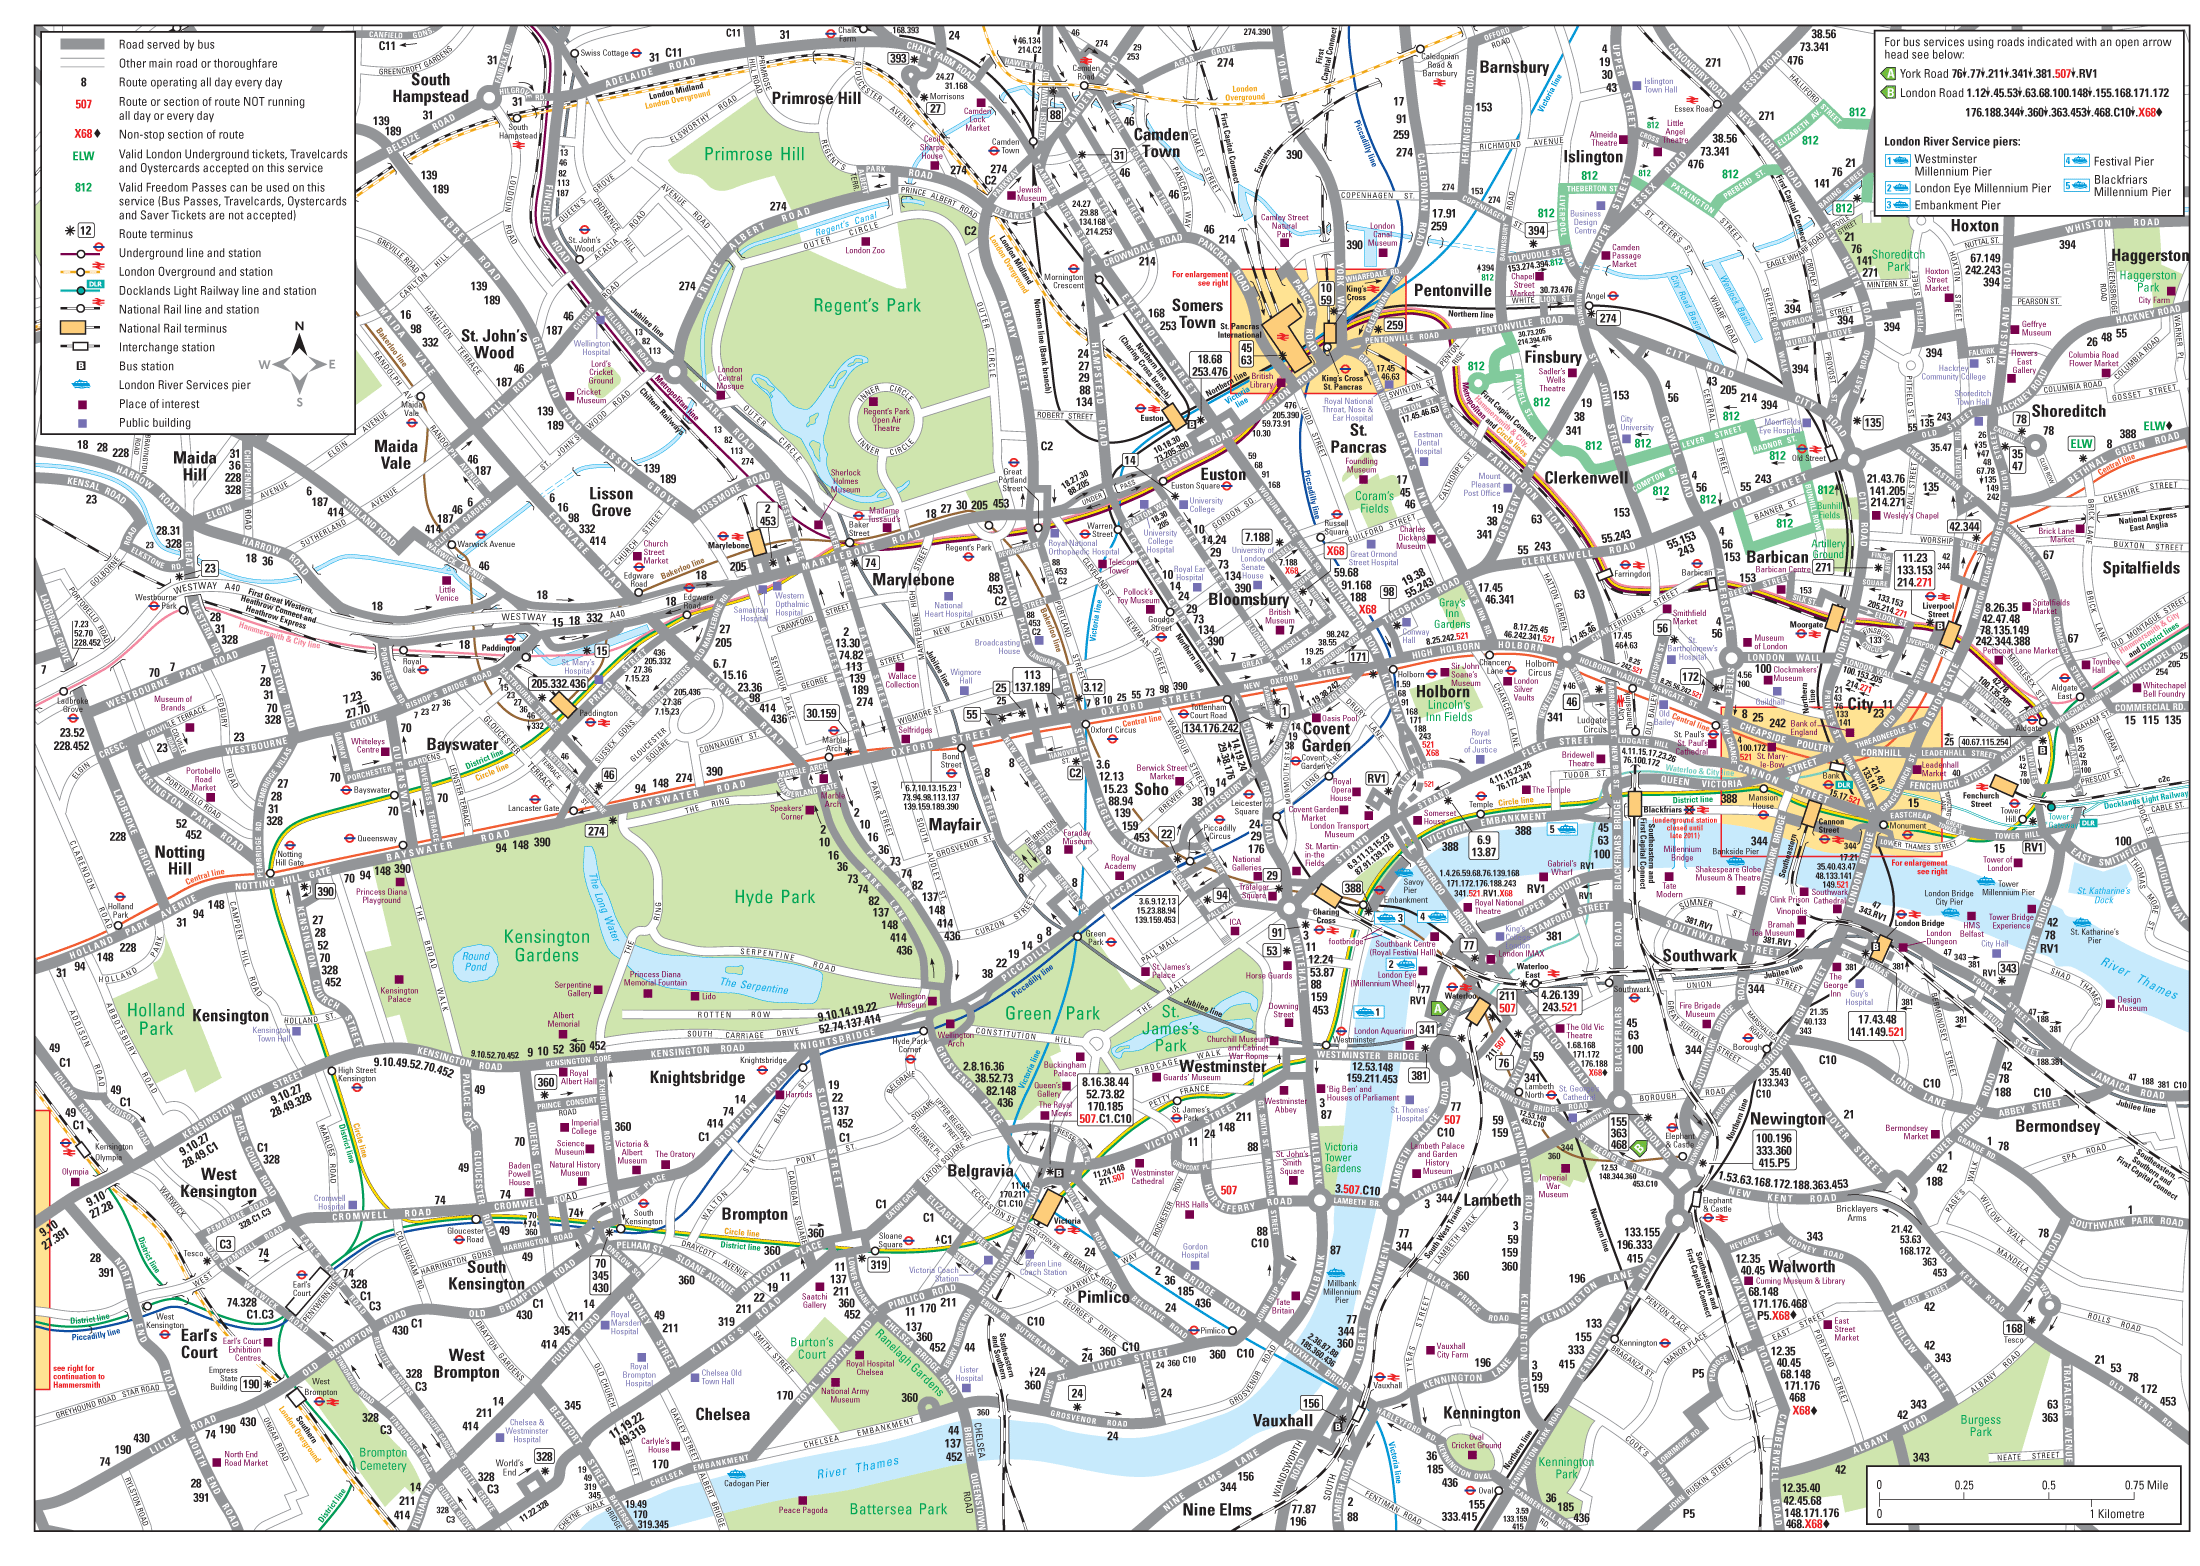 London Detailed Road Map Mapsofnet